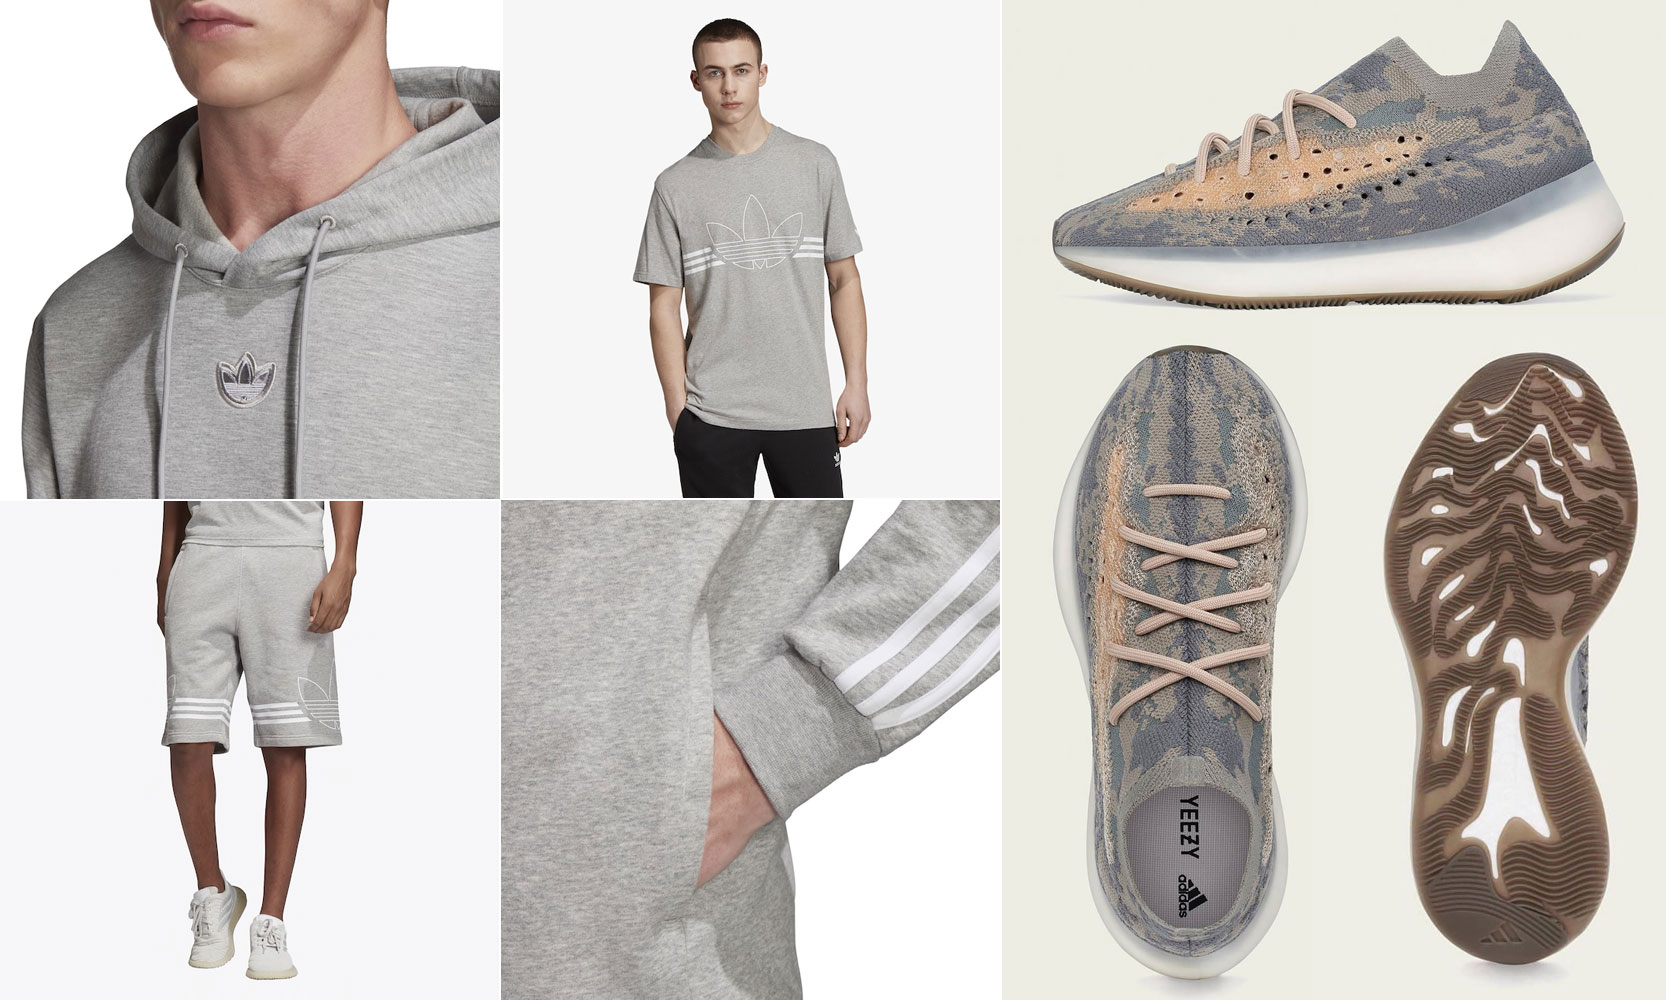 yeezy-380-mist-adidas-apparel-match